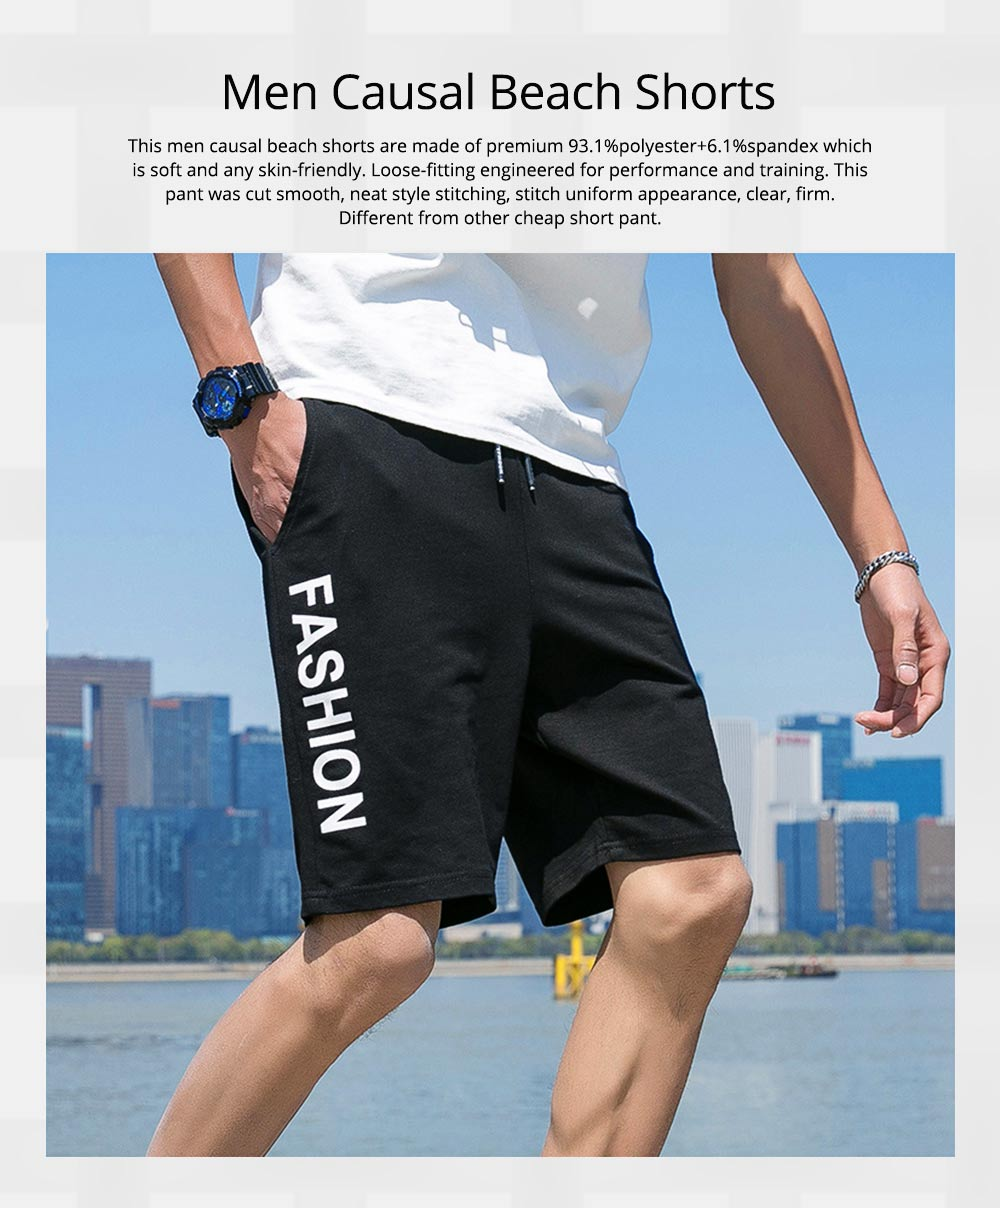 Men Summer Short Pants with Pockets, Causal Beach Shorts with Elastic Waist Drawstring, Lightweight Loose Shorts 0